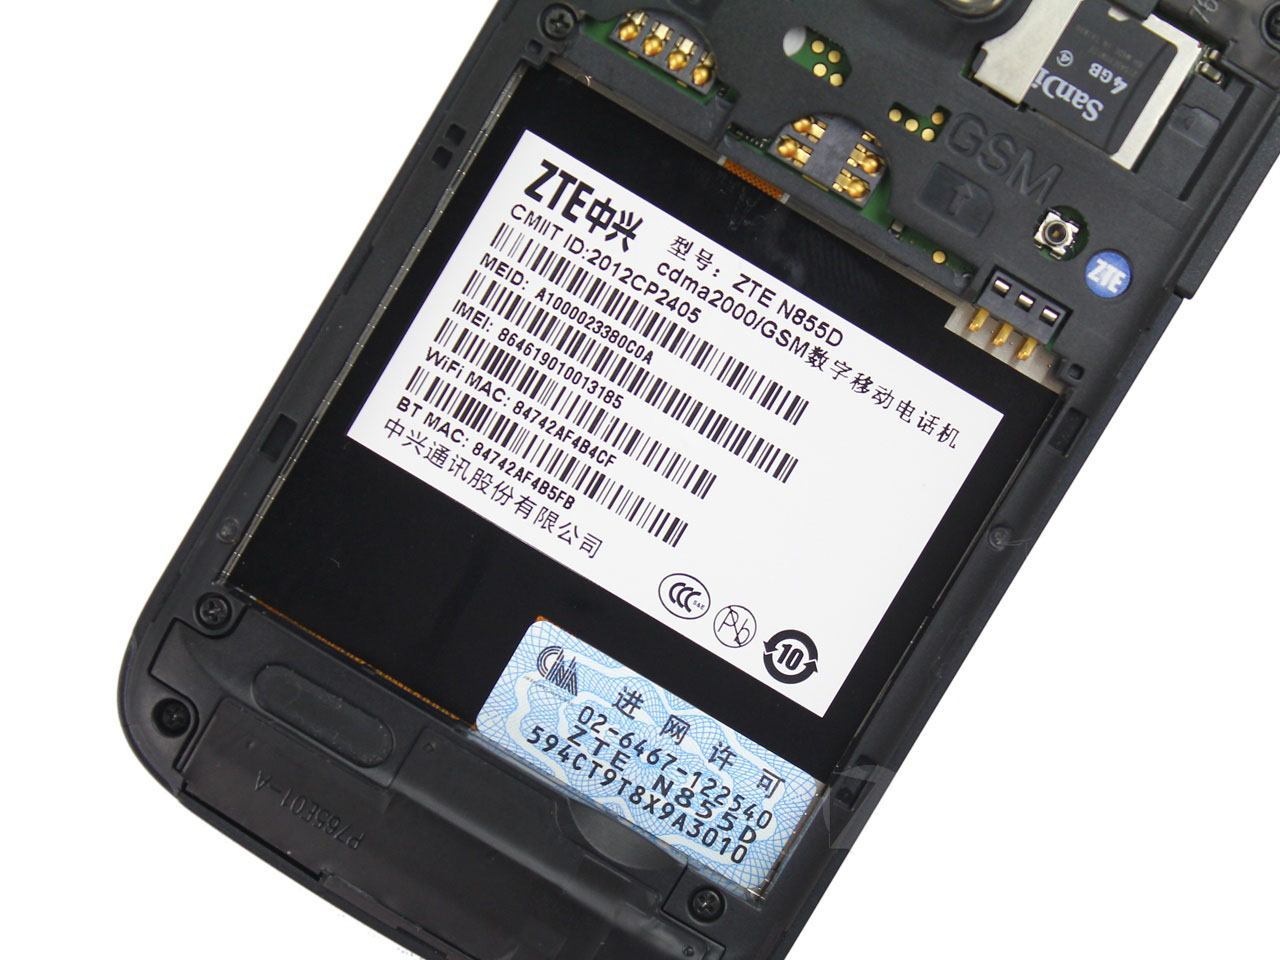 Android Phone Zte N855d Esia Fantasy Rakkipanda Battery For Imo Discovery S88